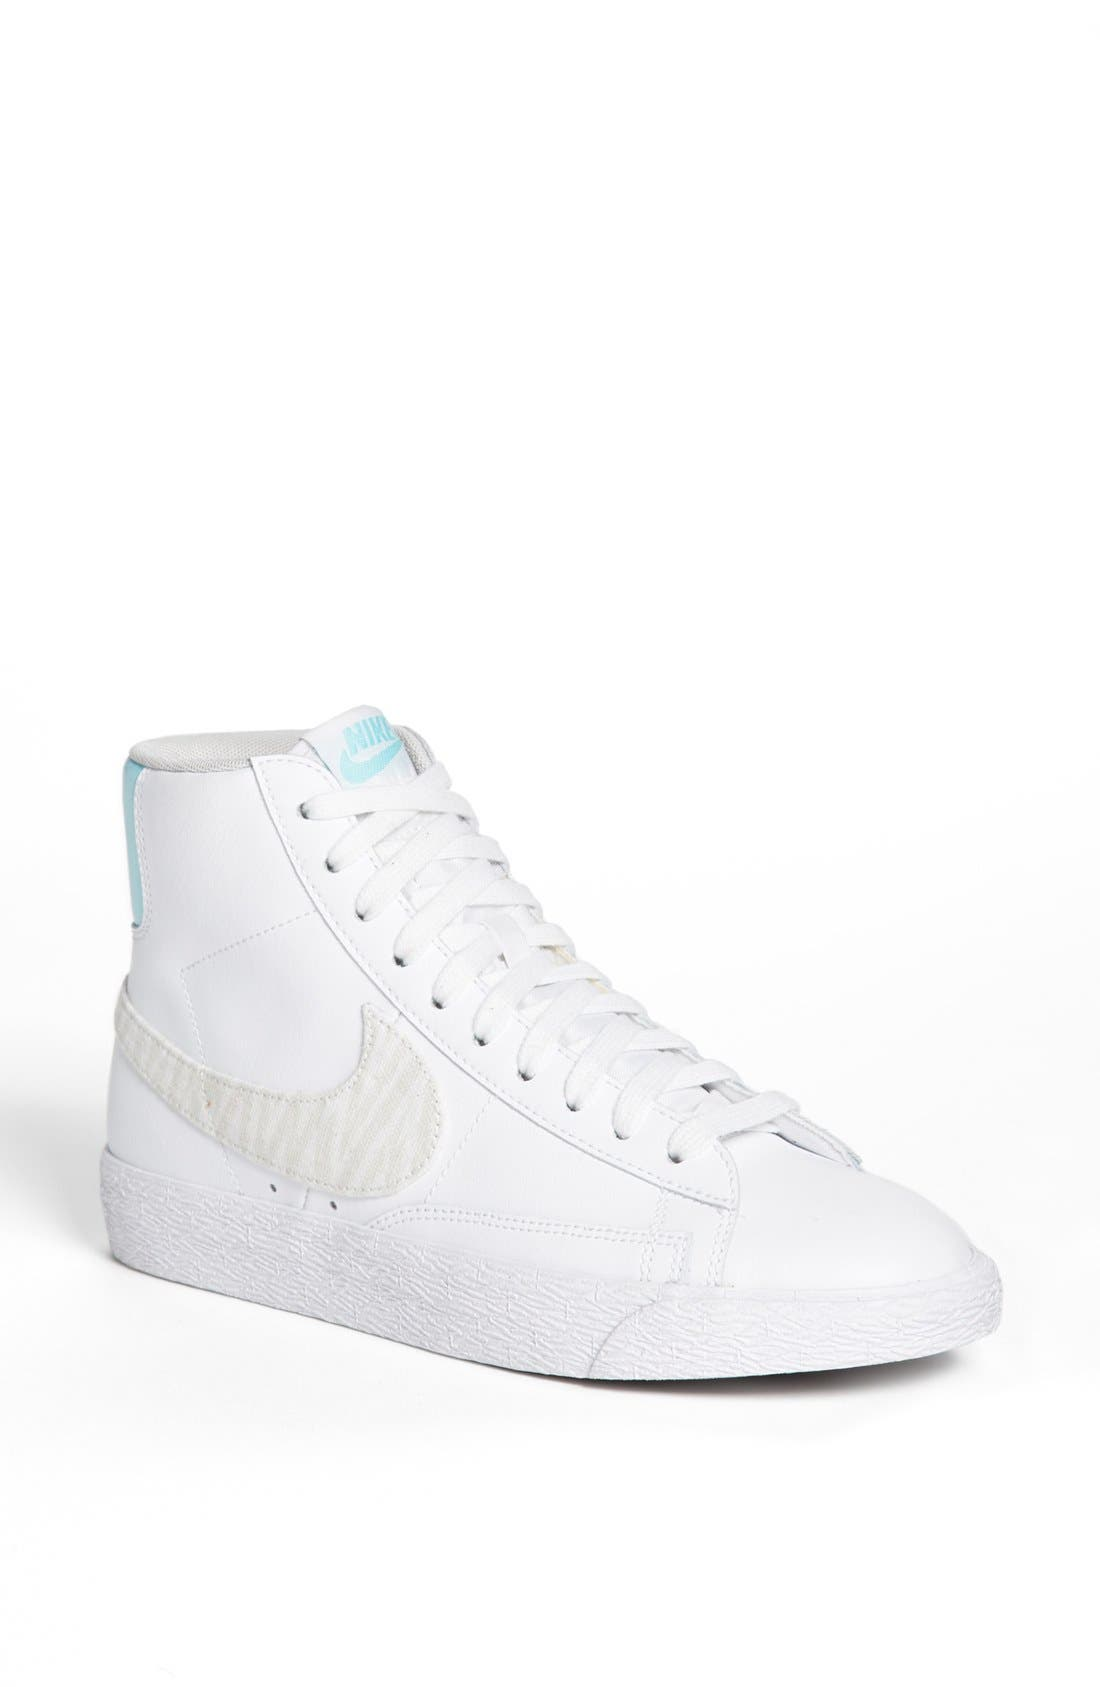 'Blazer' Mid Leather Sneaker,                             Main thumbnail 1, color,                             103